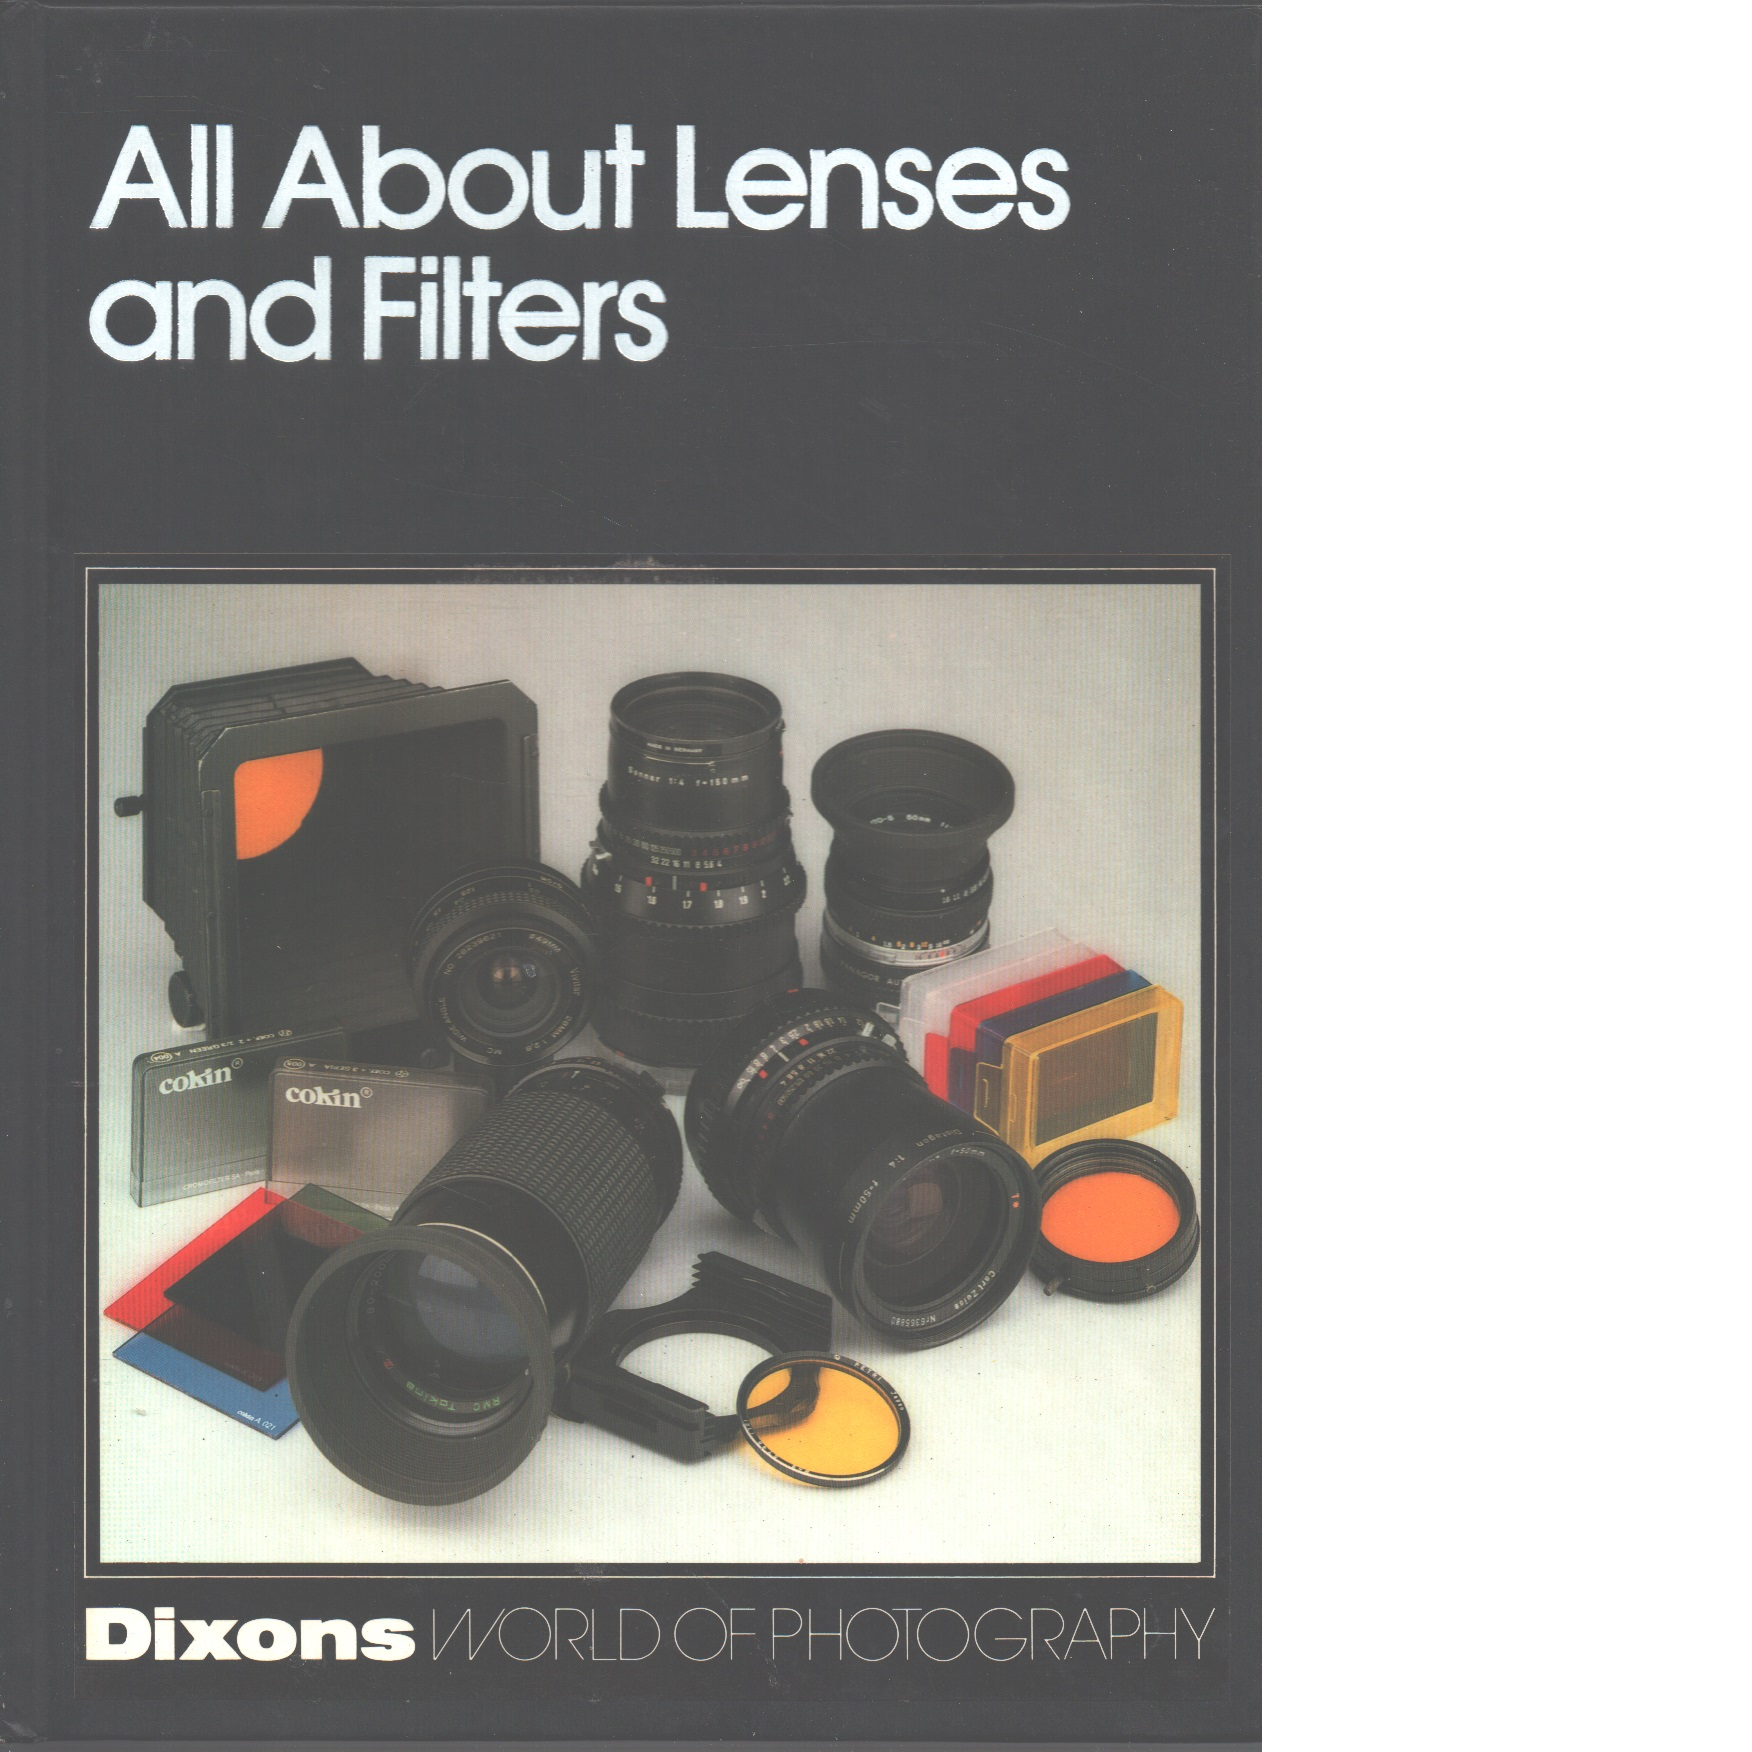 Dixons world of photography : All about Lenses and Filters - Red.